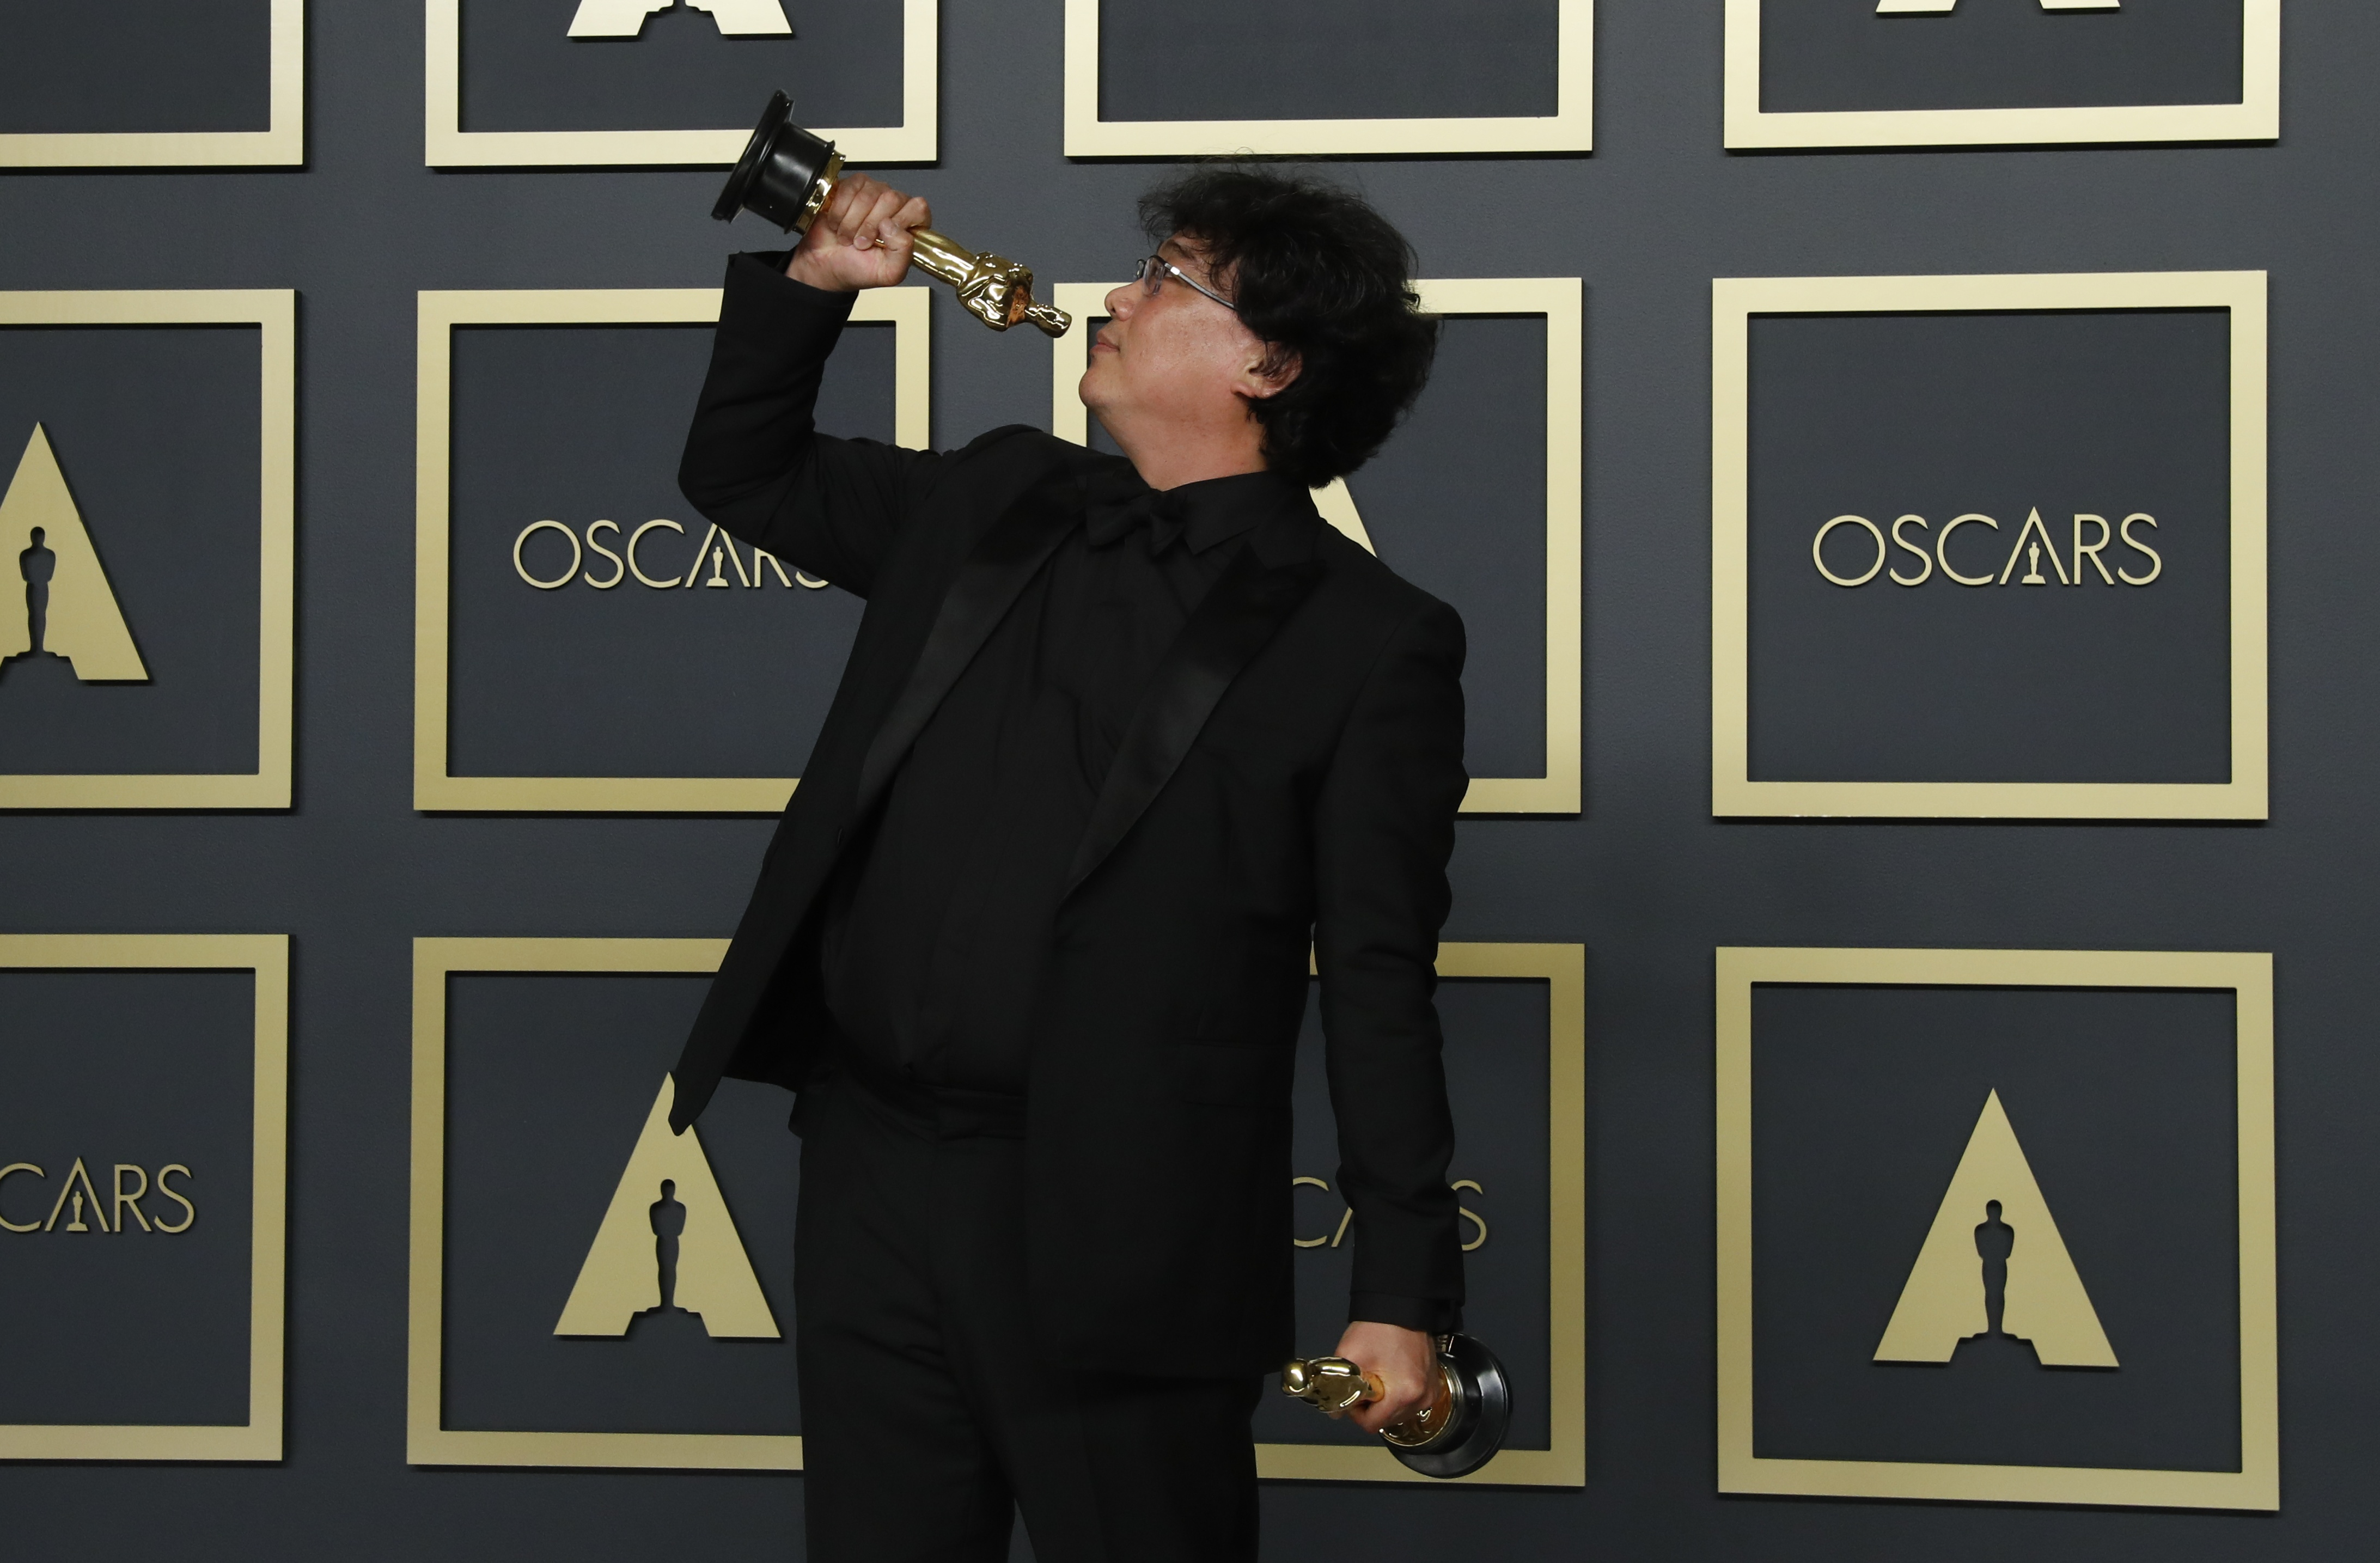 """Bong Joon Ho poses with two Oscars, one for Best Director and one for Best International Feature Film for """"Parasite"""" in the photo room during the 92nd Academy Awards in Hollywood, Los Angeles, California, U.S., February 9, 2020. REUTERS/Lucas Jackson"""